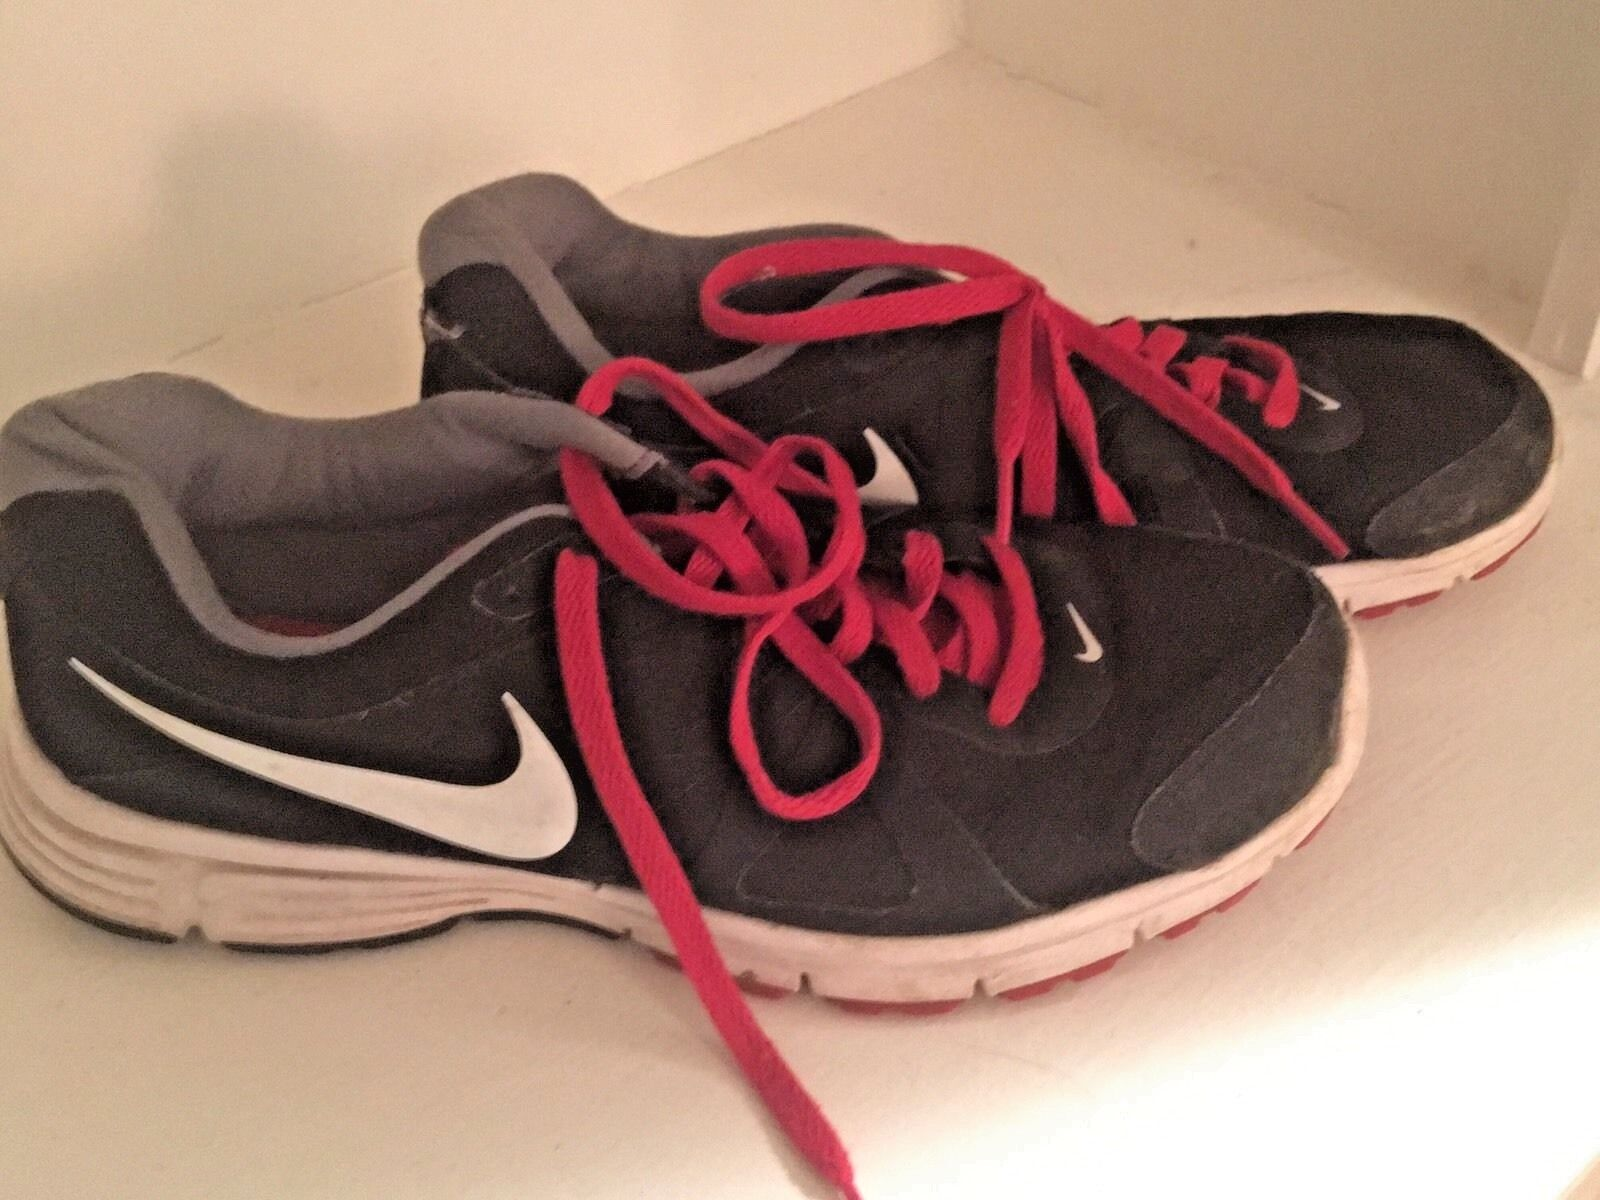 Nike Men's Revolution Athletic 2 Sneakers Size 11 Athletic Revolution Running Shoes Black Red 7d9677